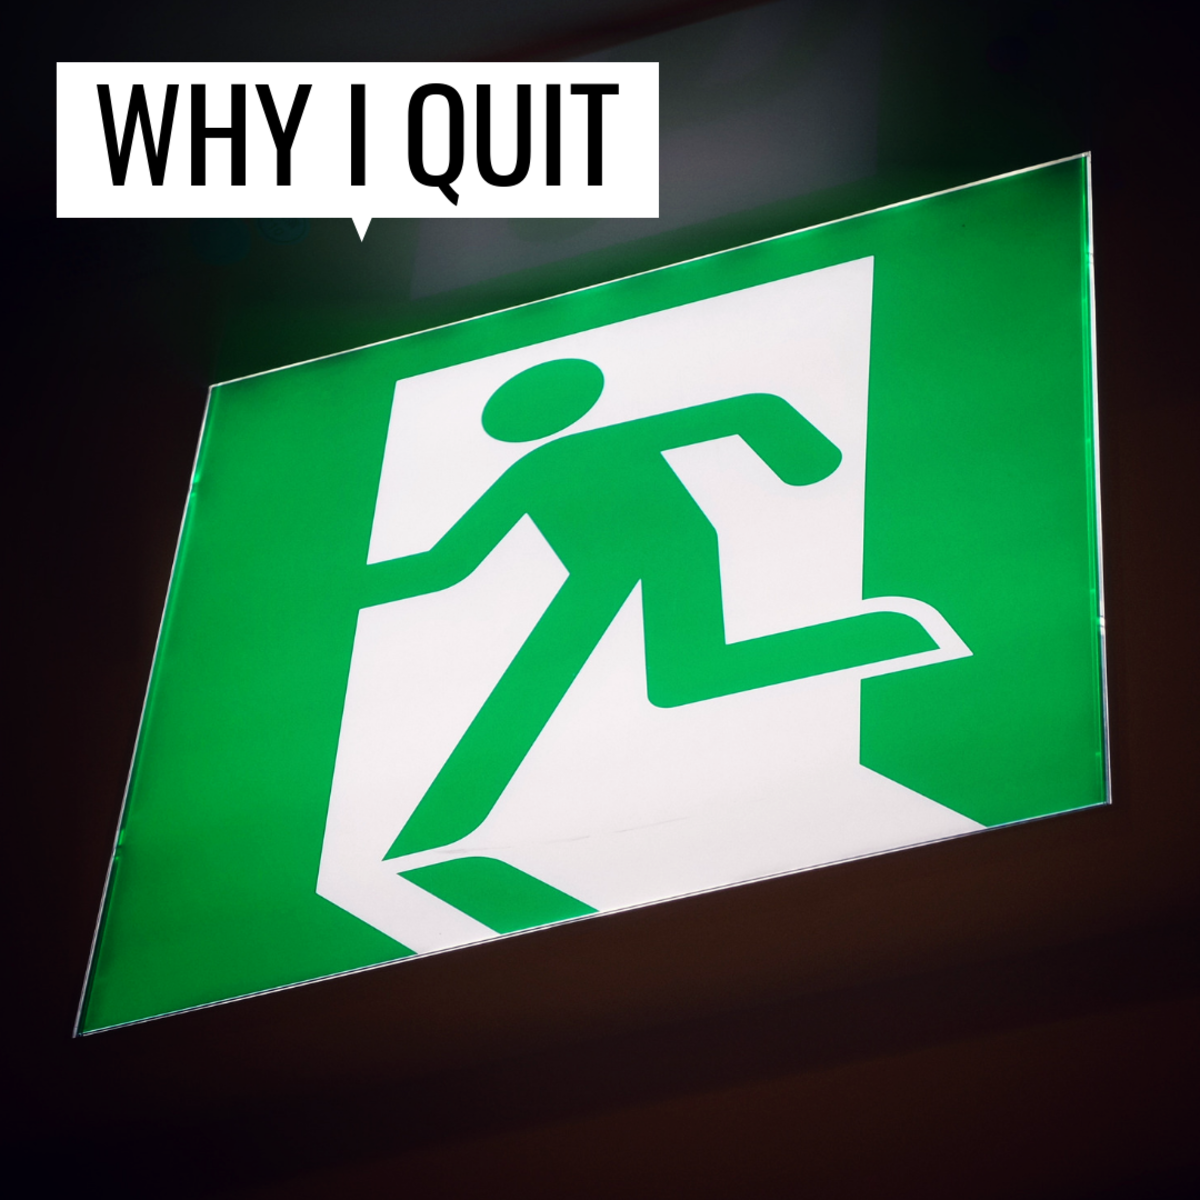 5 Signs You Should Quit Your Job